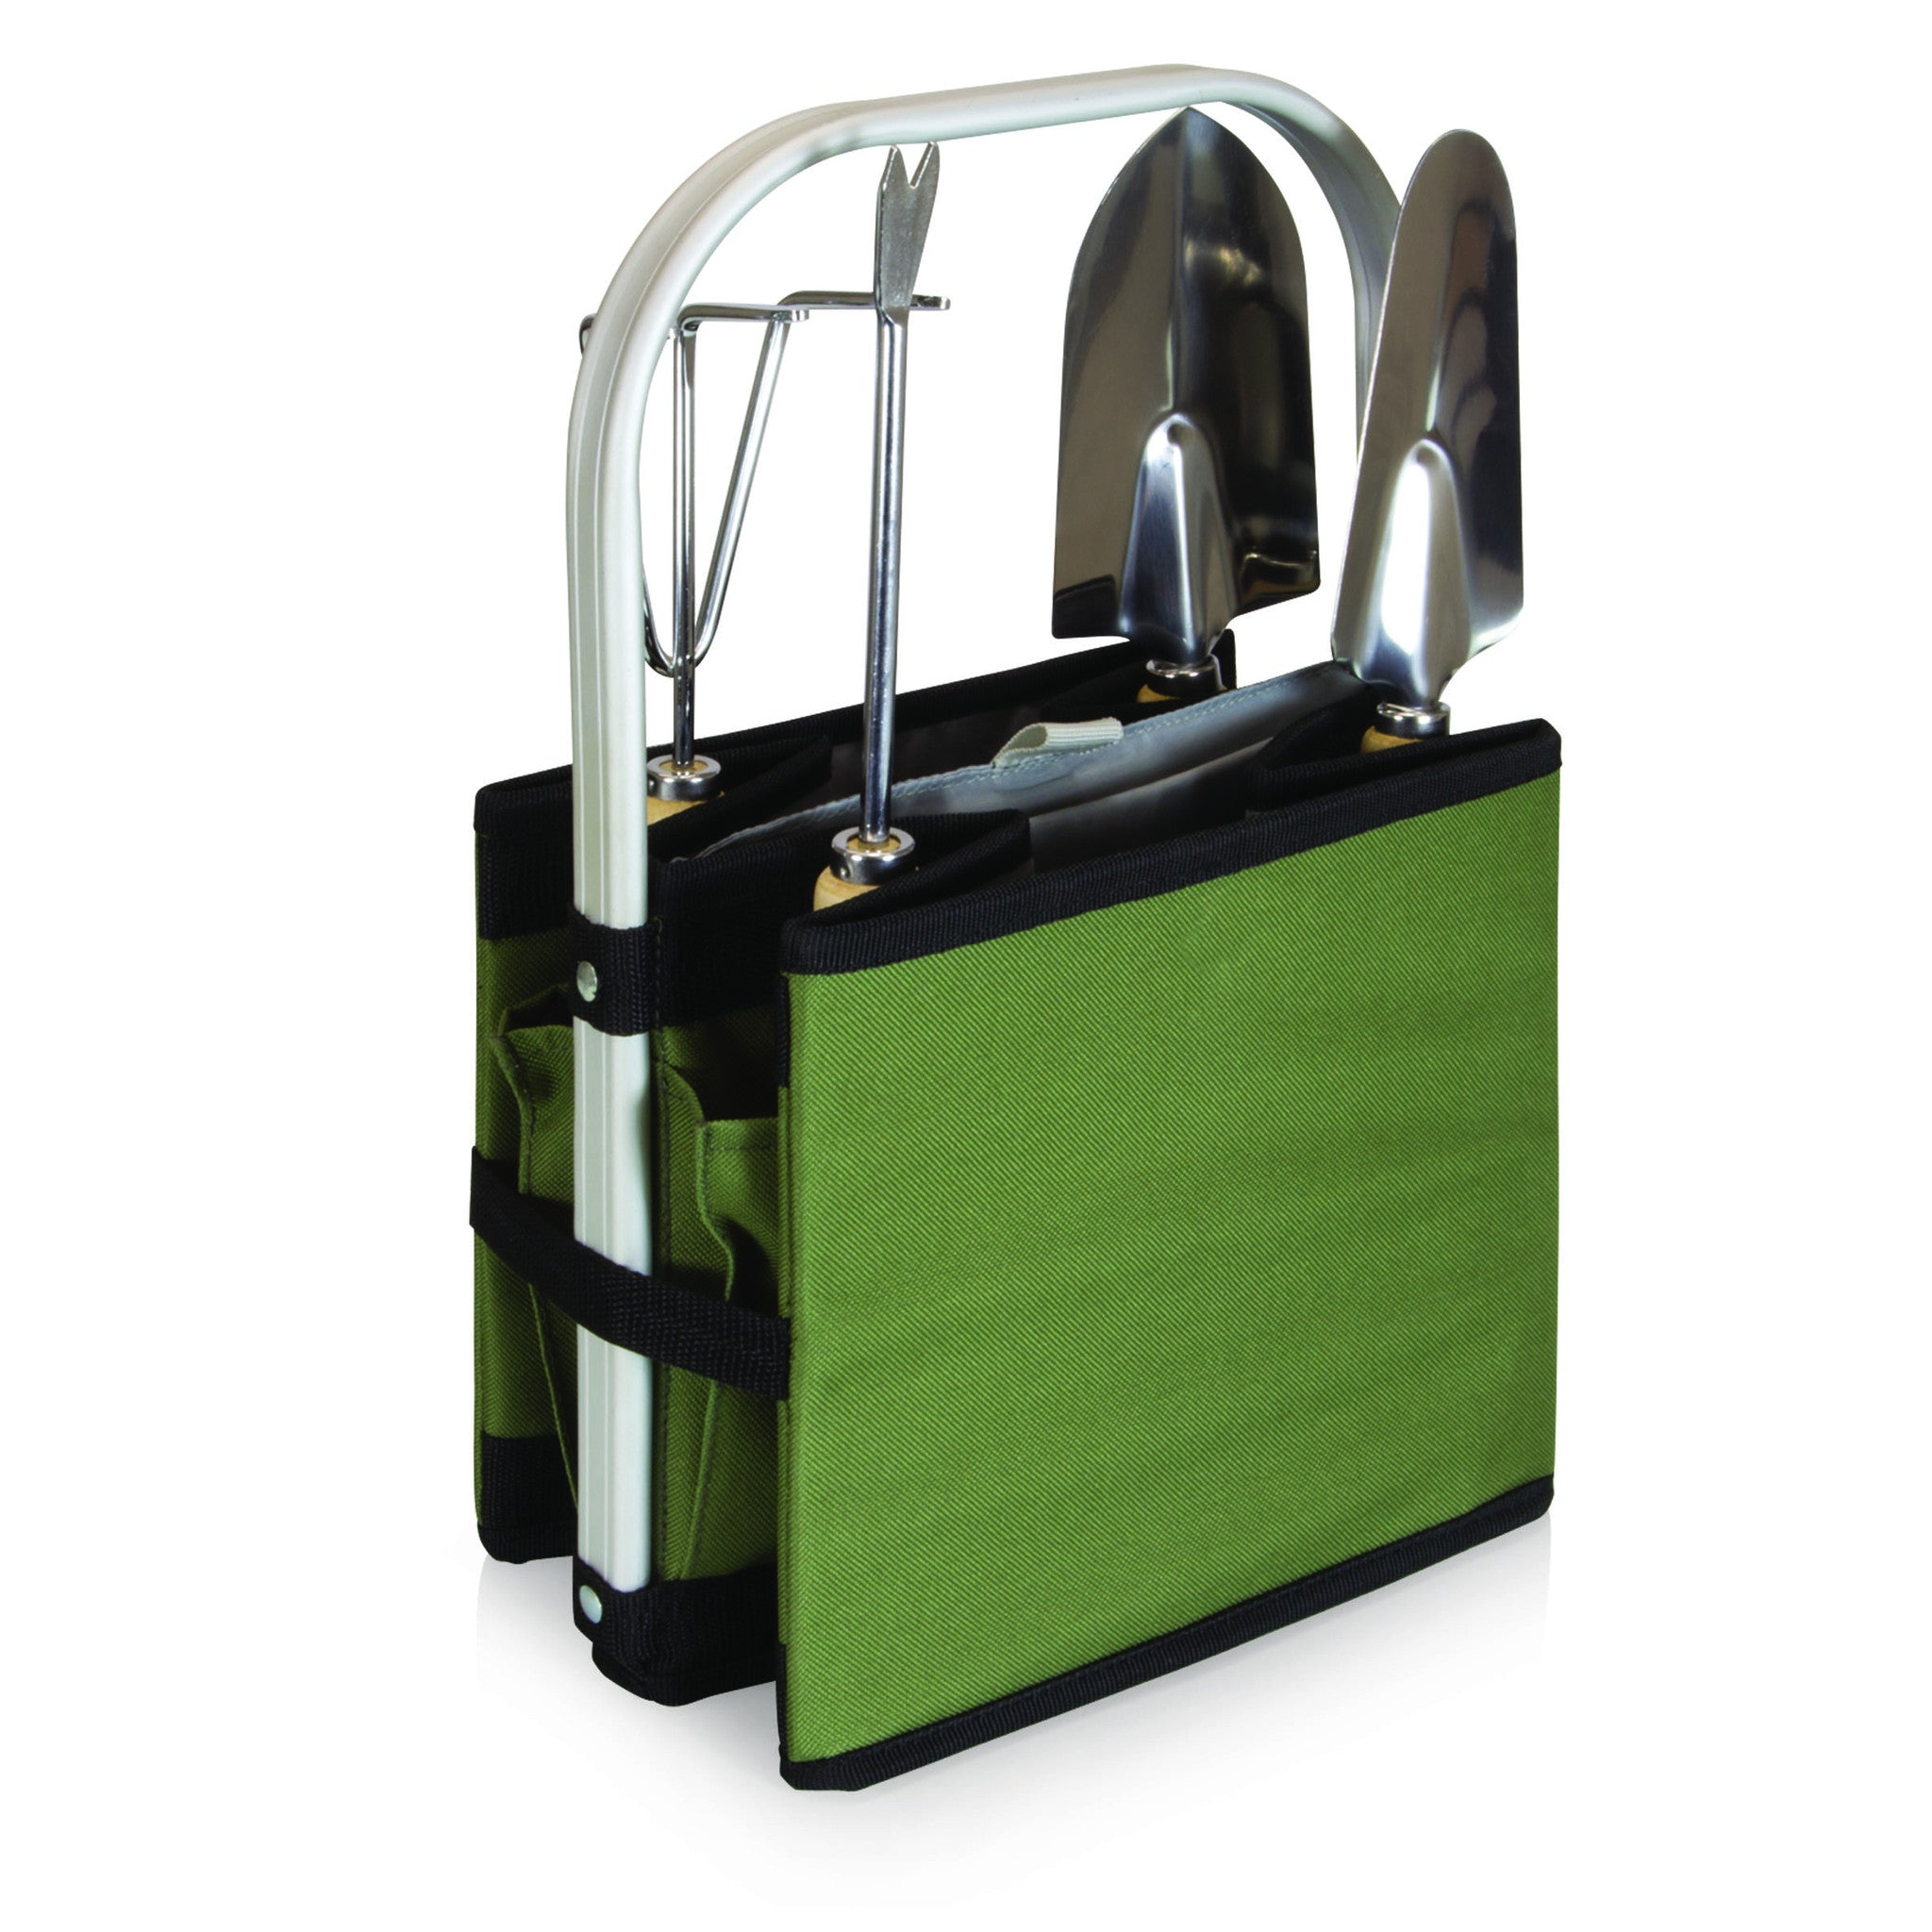 Garden Caddy Collapsible Basket with Tools gobagdepot